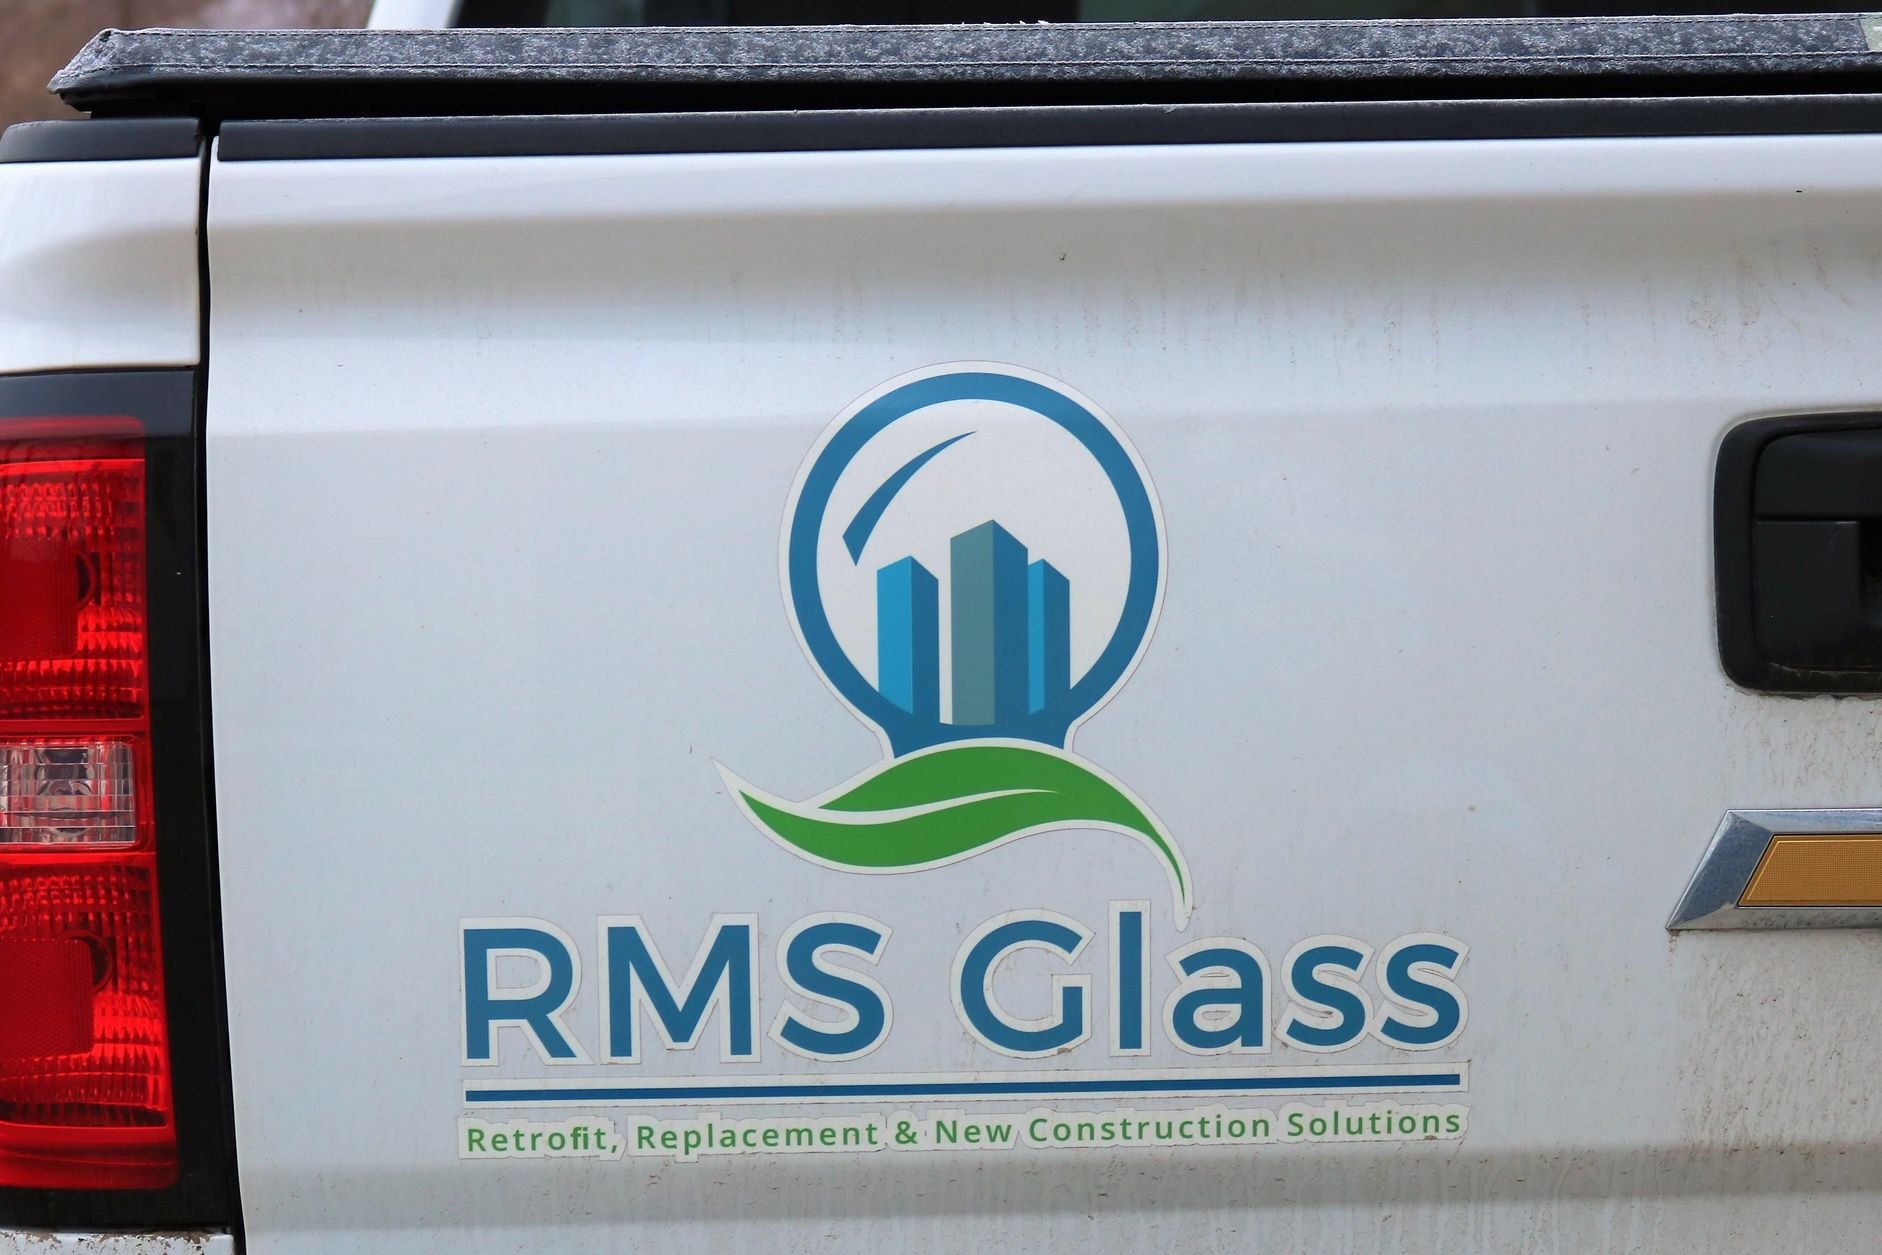 RMS Glass: Retrofit, Replacement & New Construction Glass Solutions